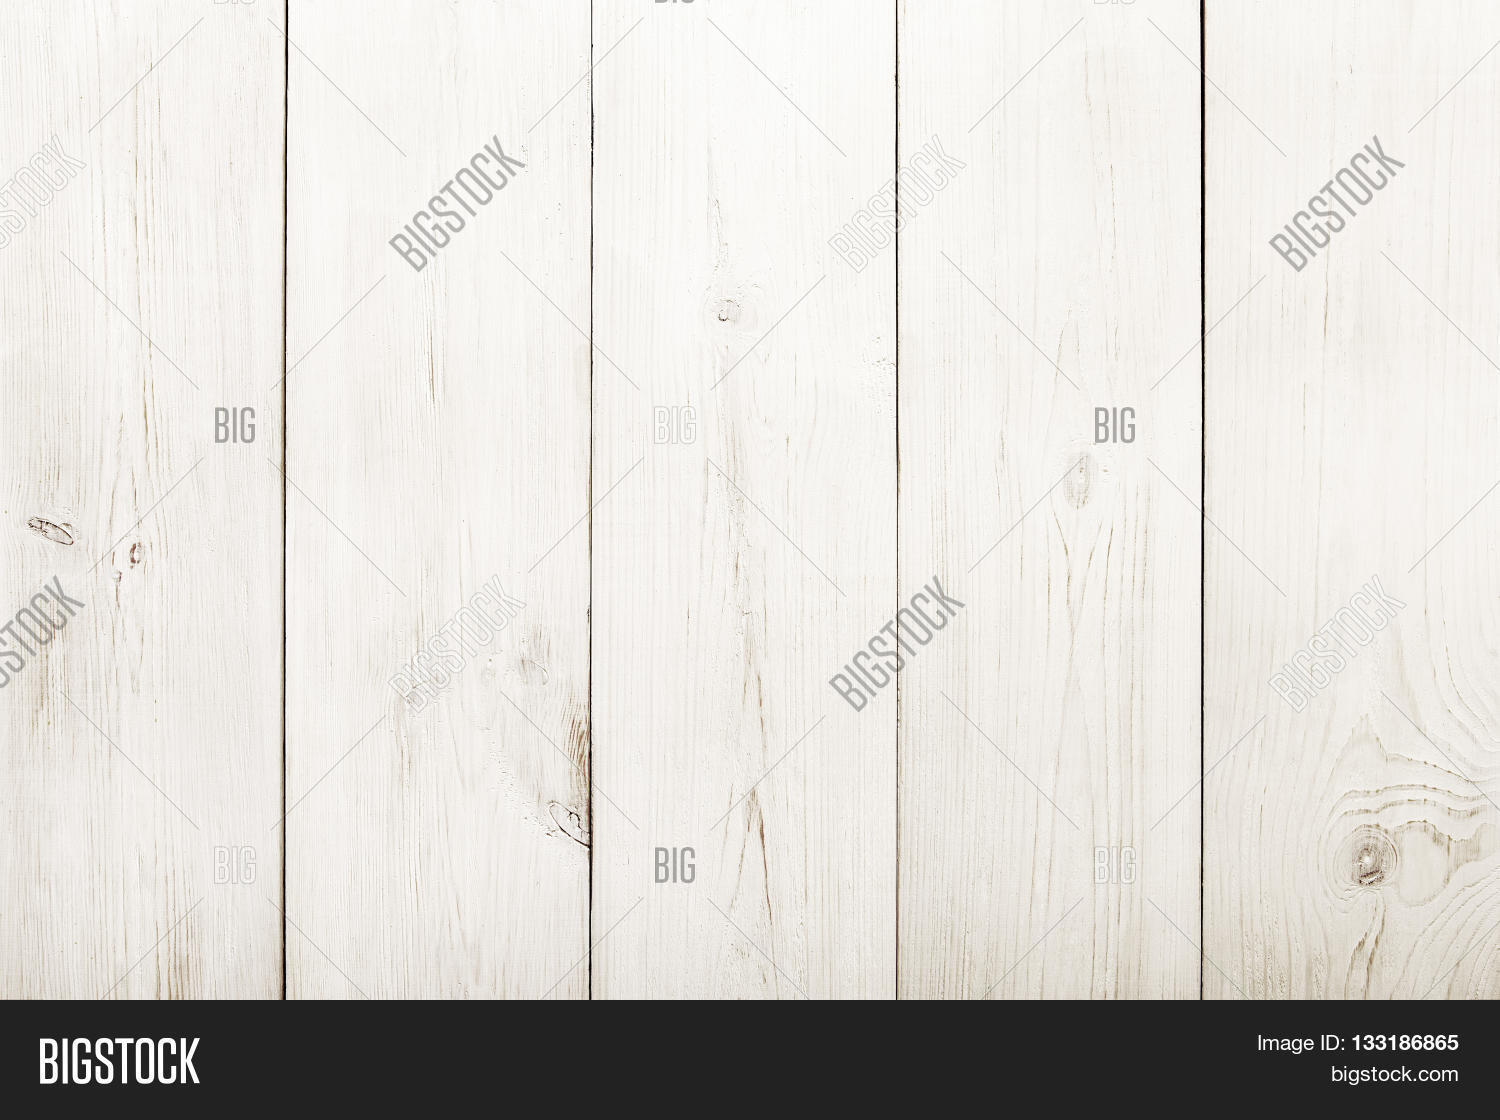 white wood floor texture. White wood floor texture and background  painted Rustic shabby Wood Floor Texture Background Image Photo Bigstock